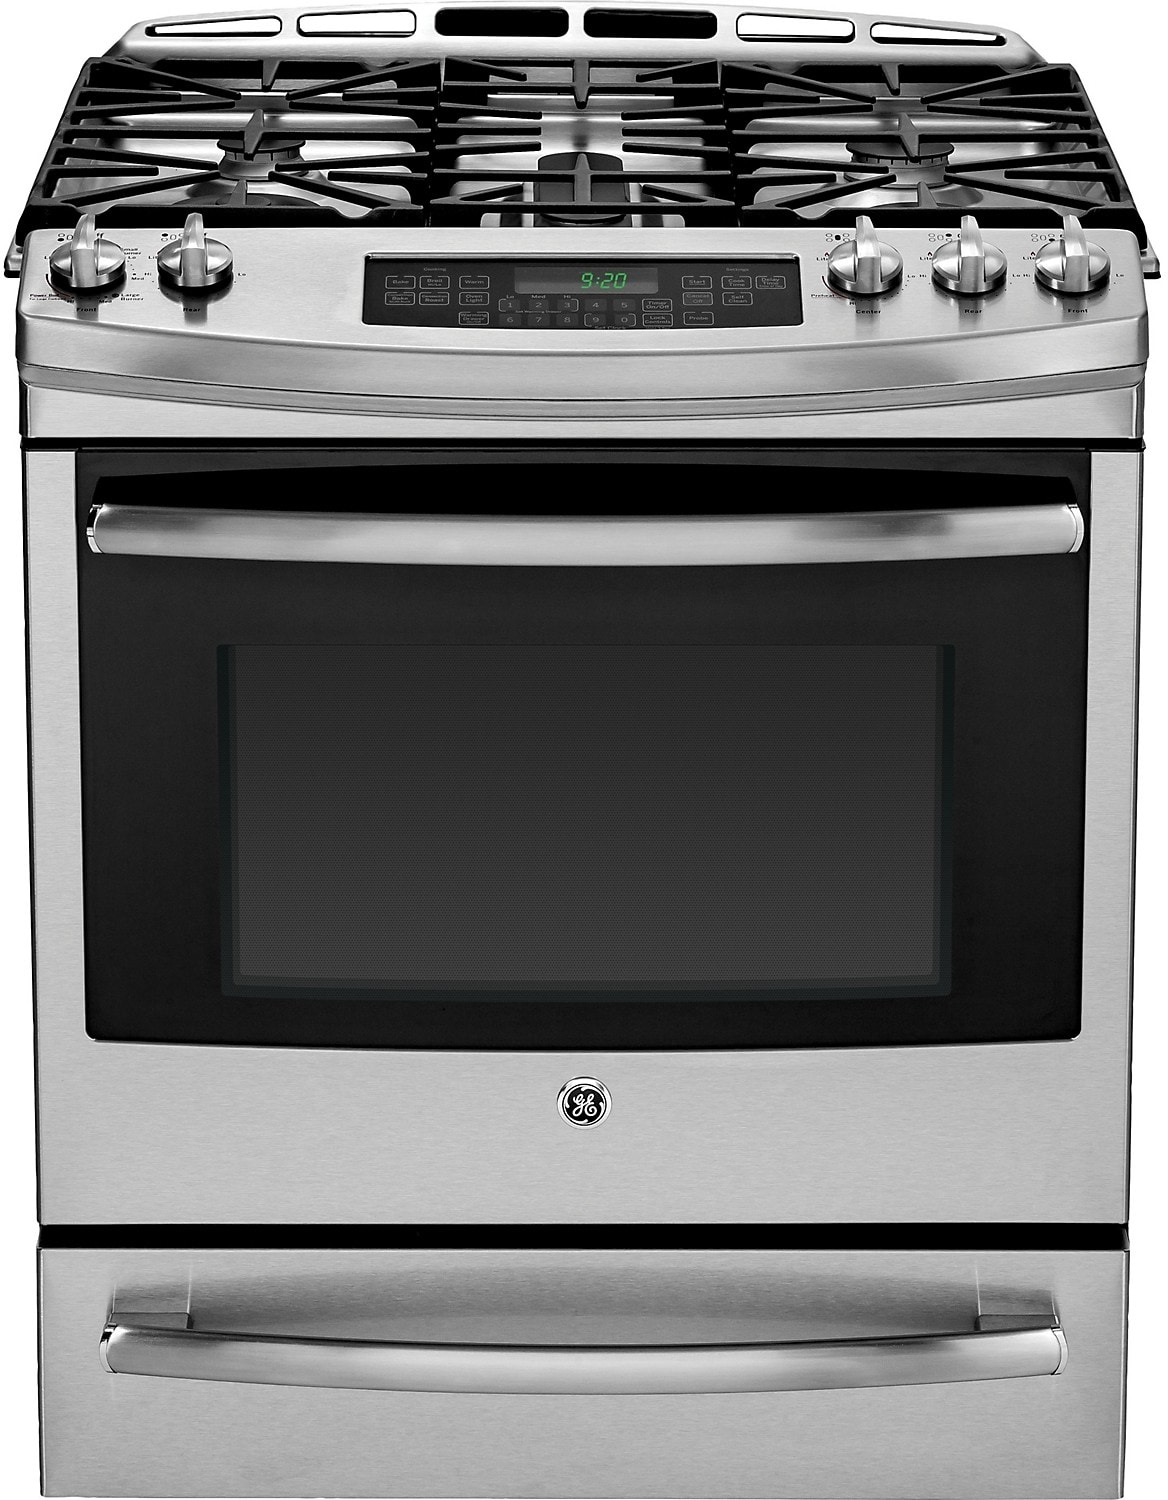 "GE 30"" Slide-In Self-Cleaning Dual Fuel Convection Range – Stainless Steel"